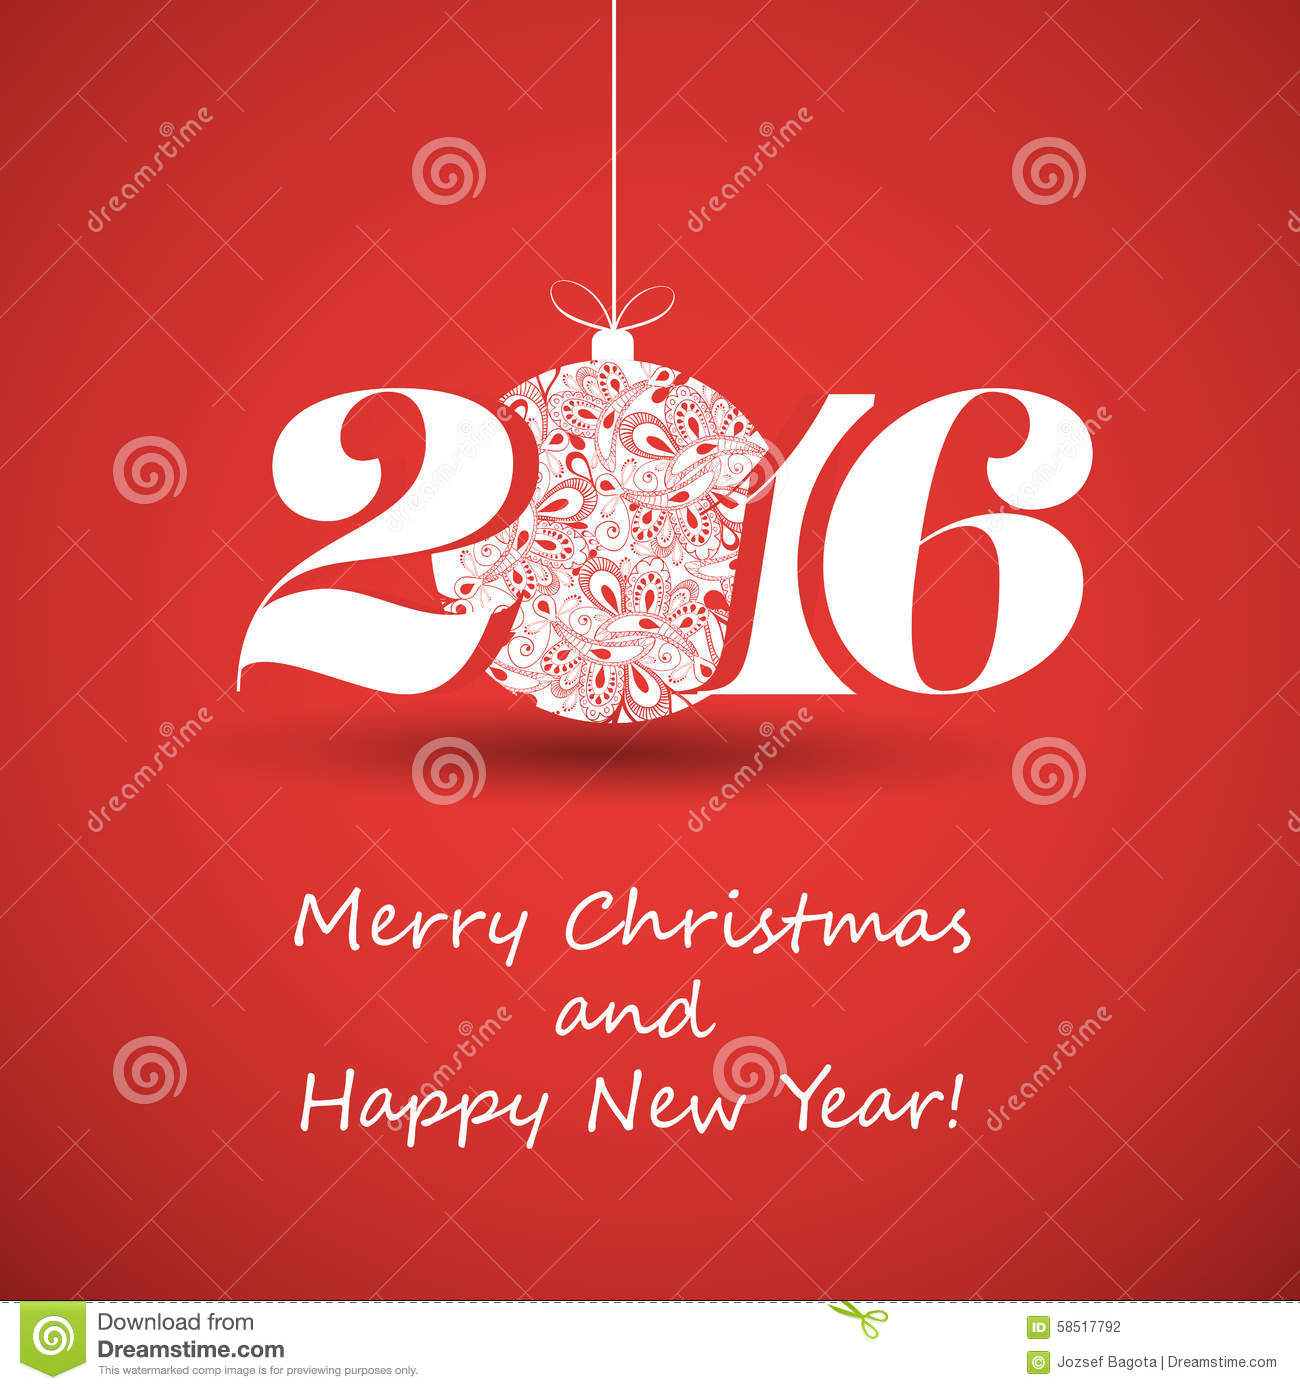 Merry Christmas And Happy New Year Greeting Card Creative Design – New Year Greeting Card Template